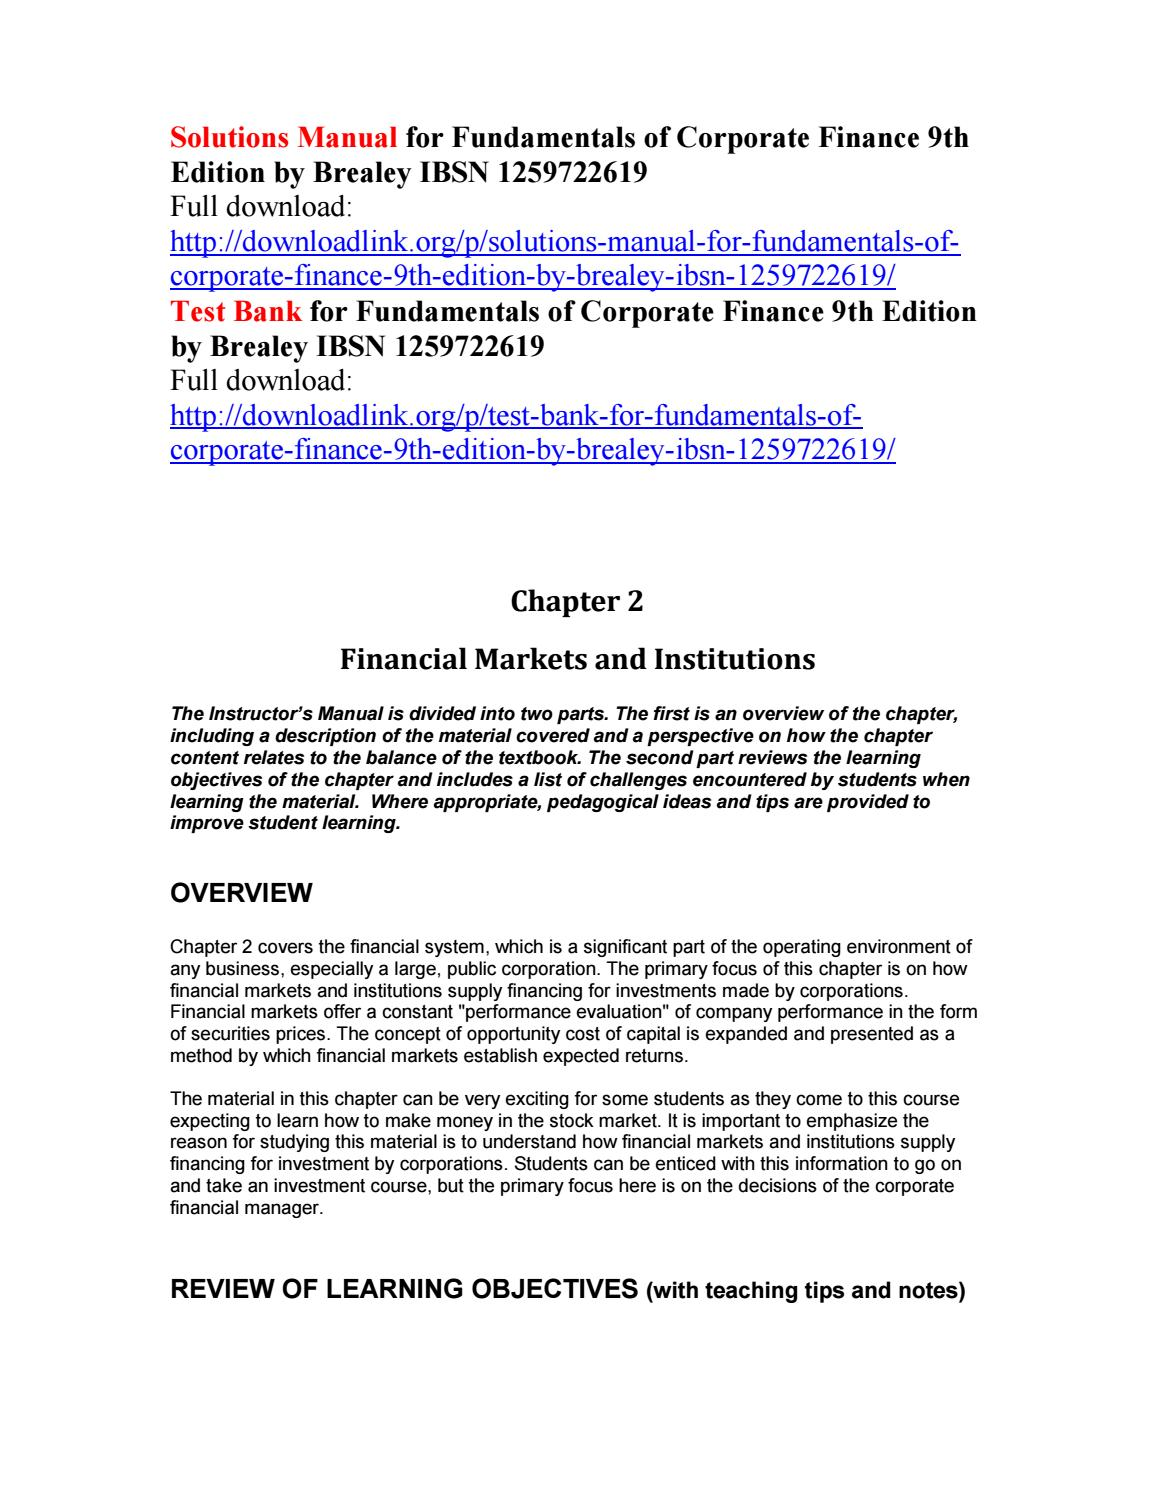 Solutions manual for fundamentals of corporate finance 9th edition by  brealey ibsn 1259722619 by Trites111 - issuu